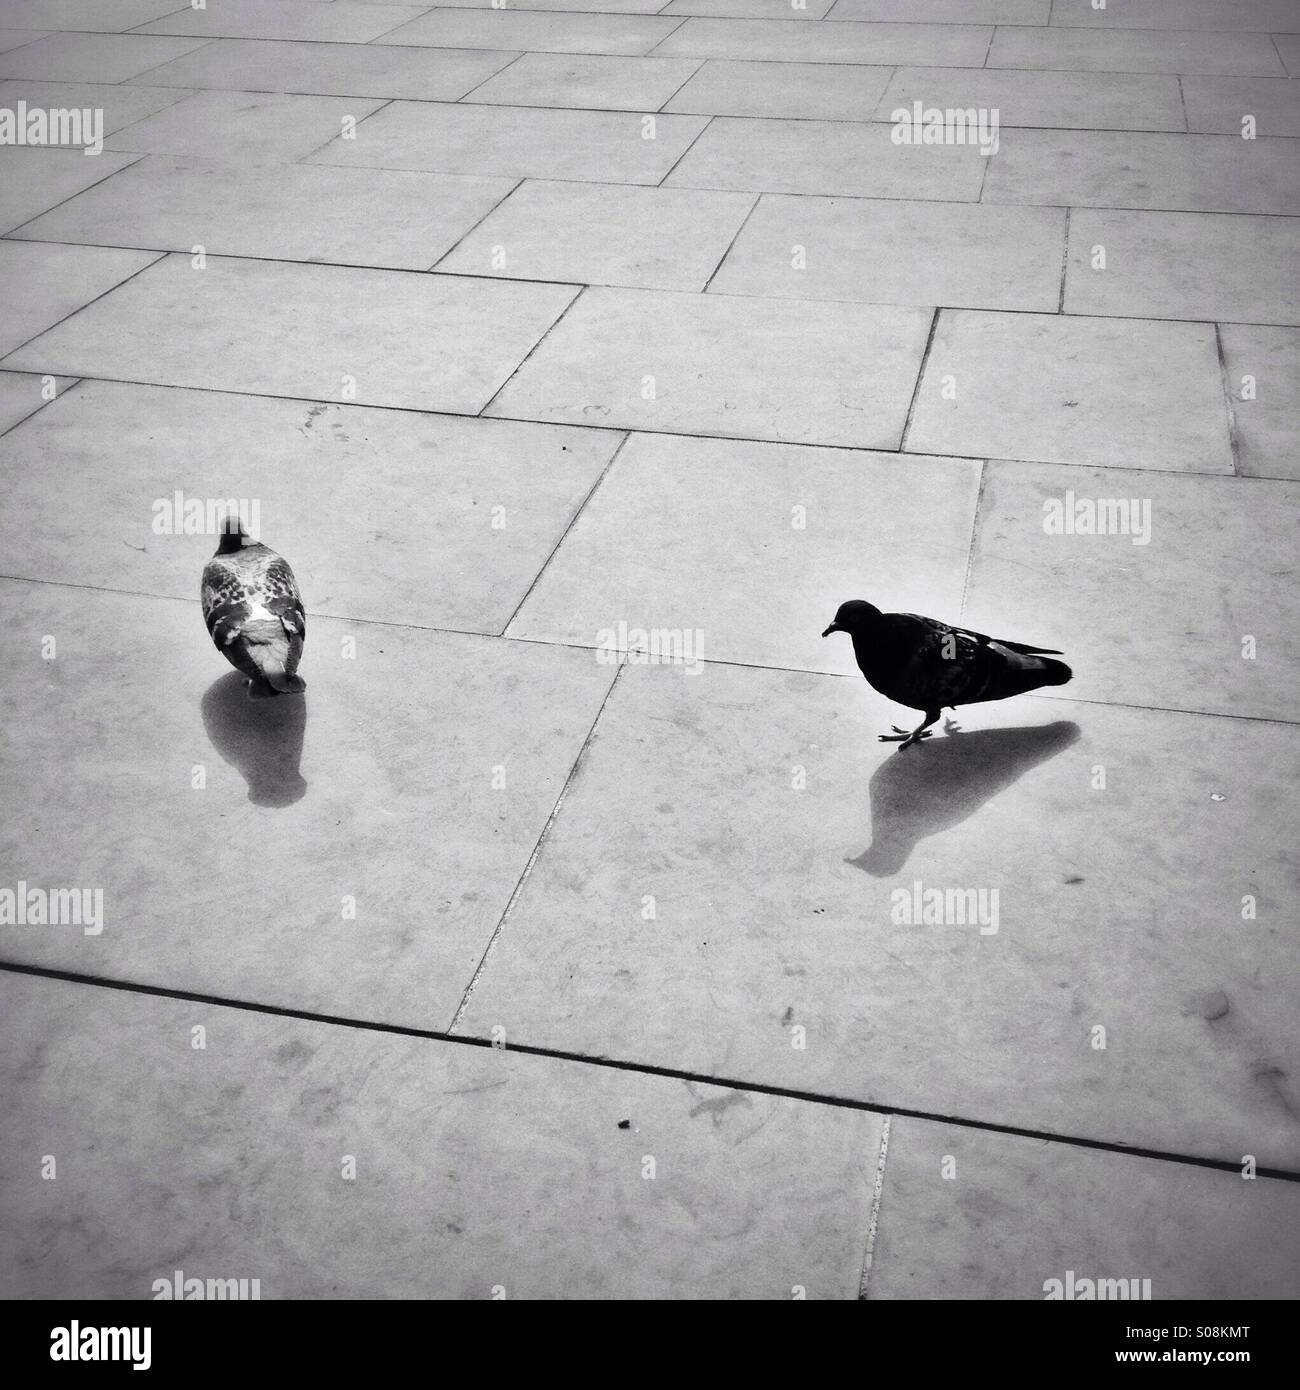 Two pigeons in London - Stock Image